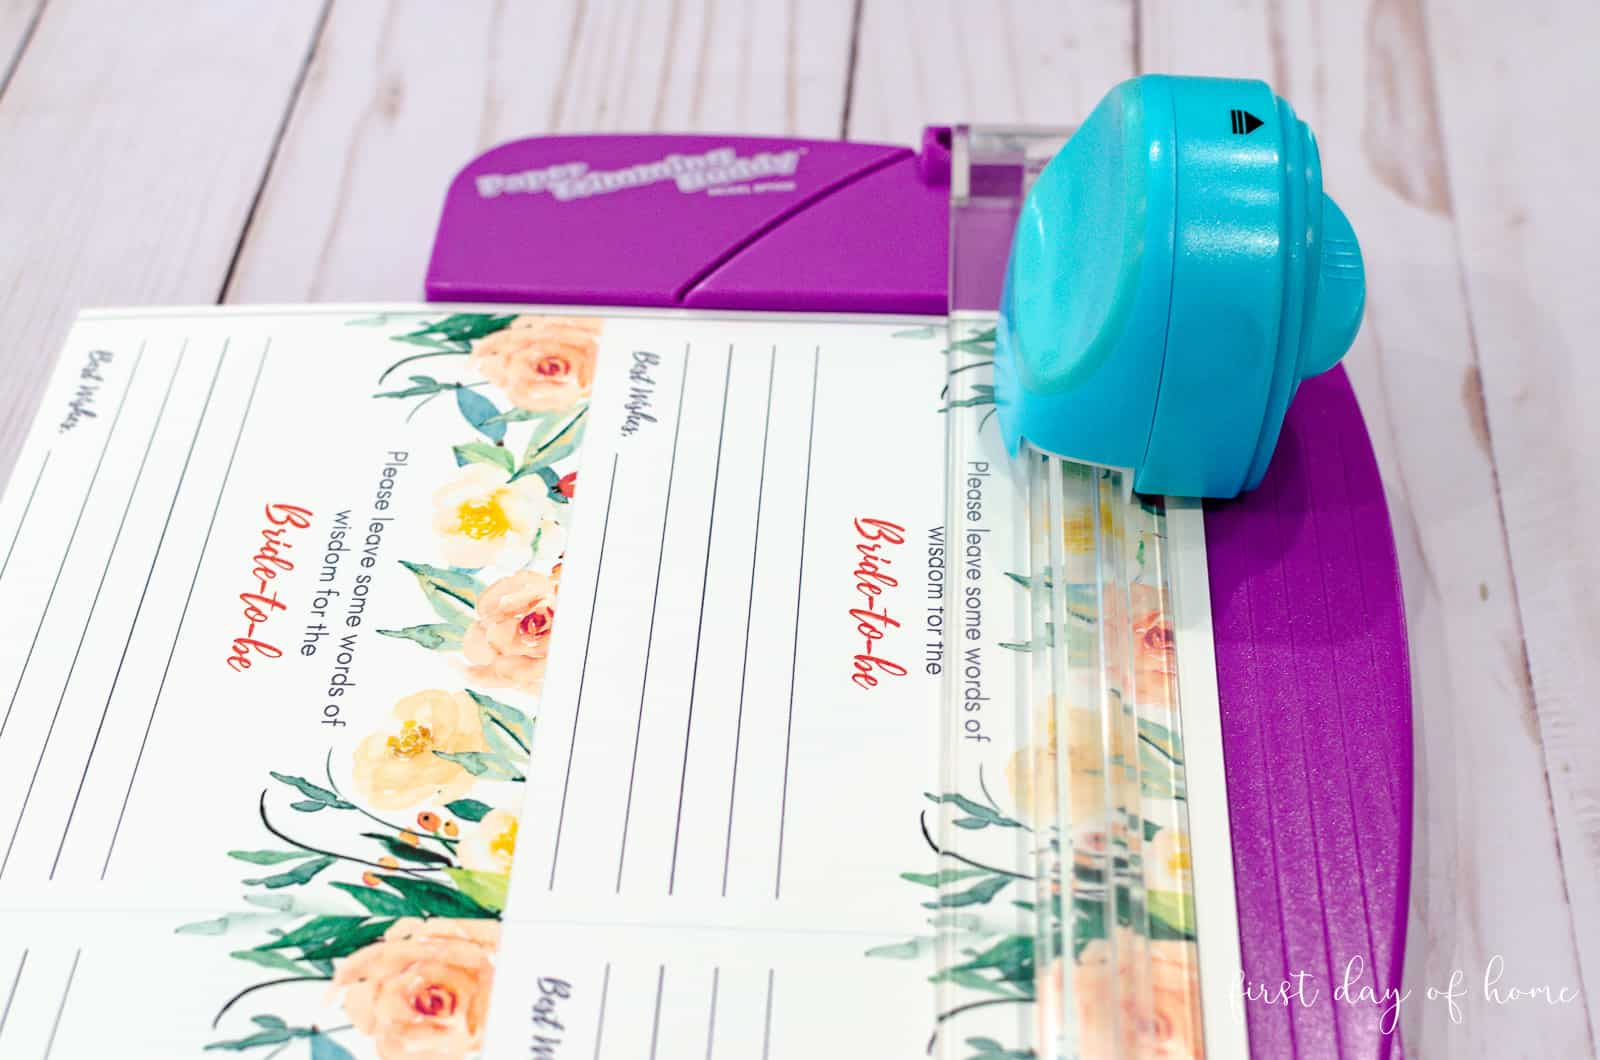 Cutting free printable bridal advice cards with portable paper cutter